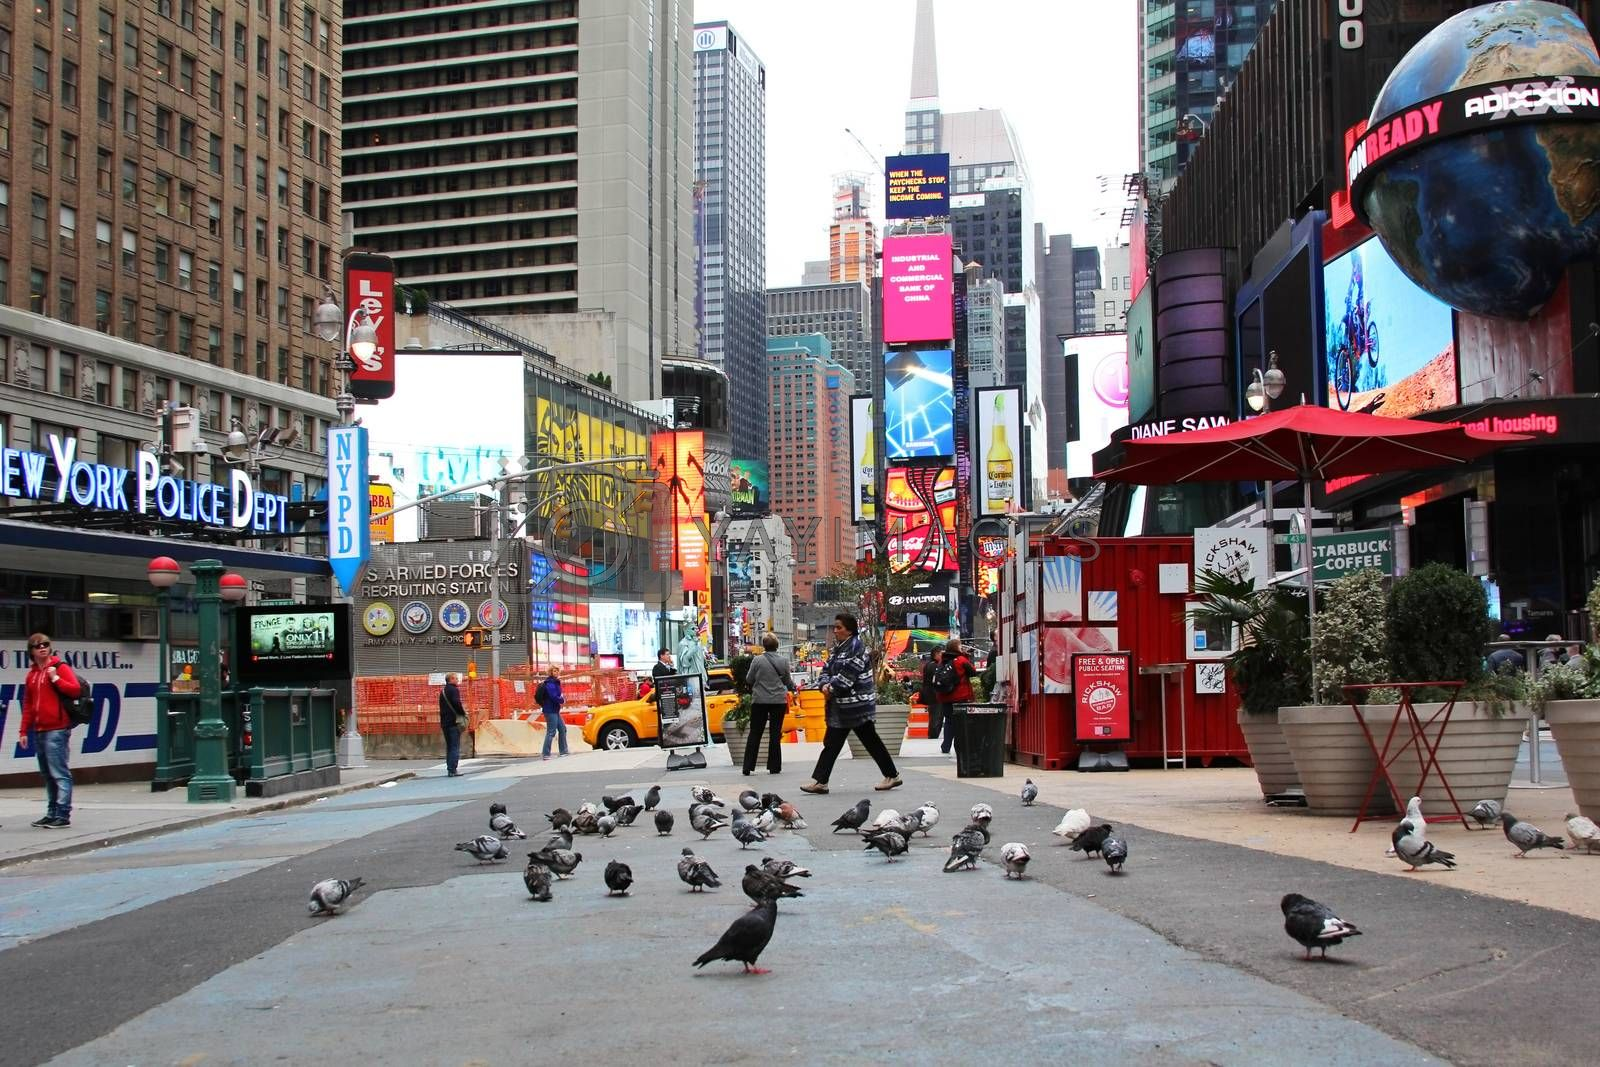 New York, NY, USA - October 12, 2012: Times Square, featured with Broadway Theaters and huge number of LED signs, is a symbol of New York City and the United States, October 12, 2012 in Manhattan, New York City